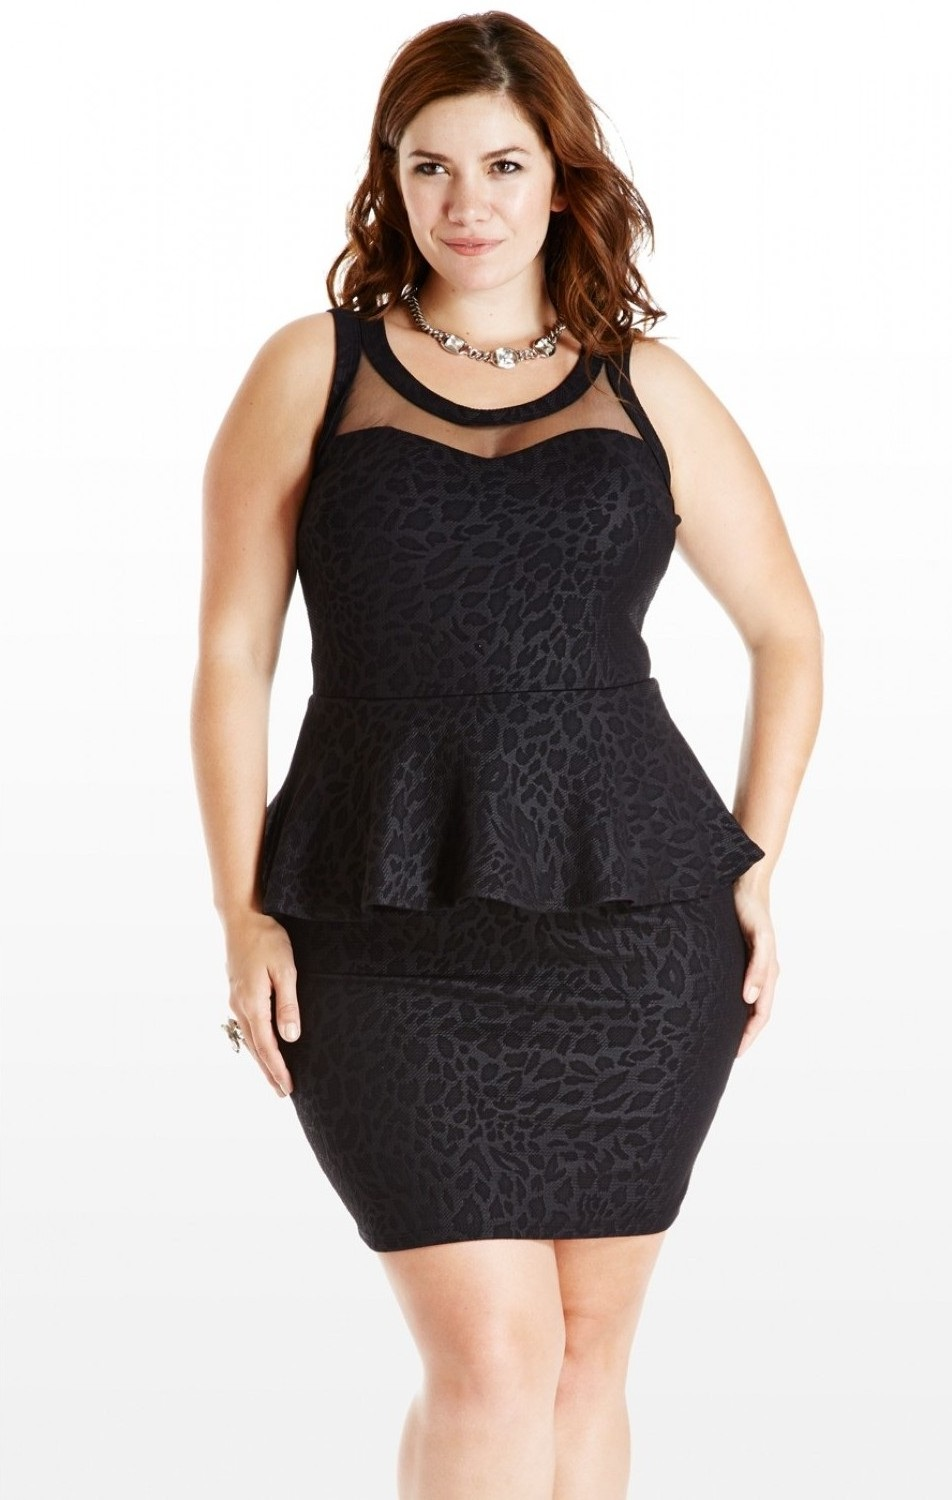 Stand out in style all night with the collection of affordable plus size party dresses in figure flattering sizes and styles at Stein Mart. Our selection of discount plus size cocktail dresses is full of party ready designs for silhouettes of every shape and size.